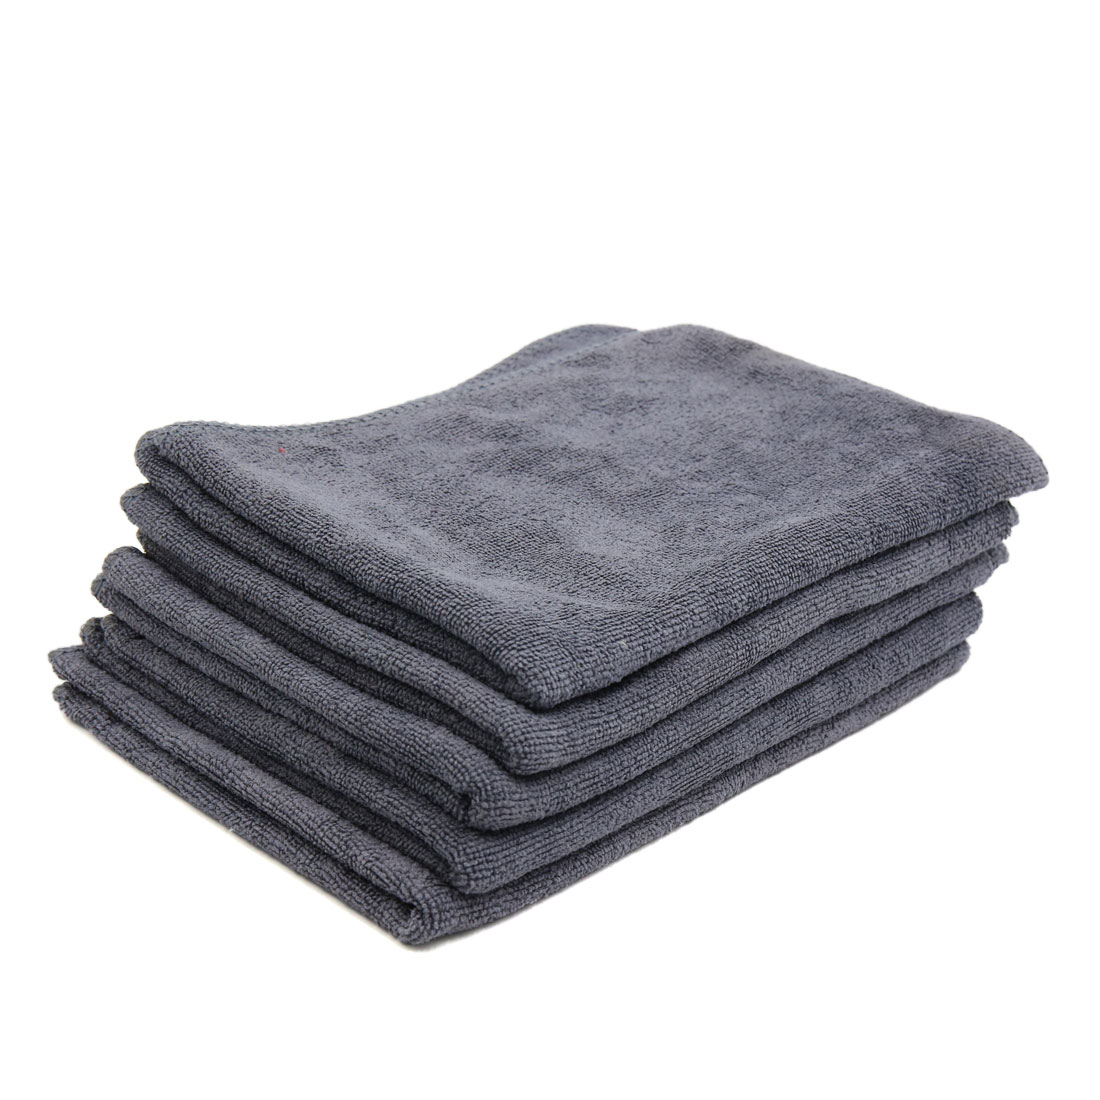 5pcs 65 x 33cm 250GSM Microfiber Towel Clean Cloths for Car Washing Gray